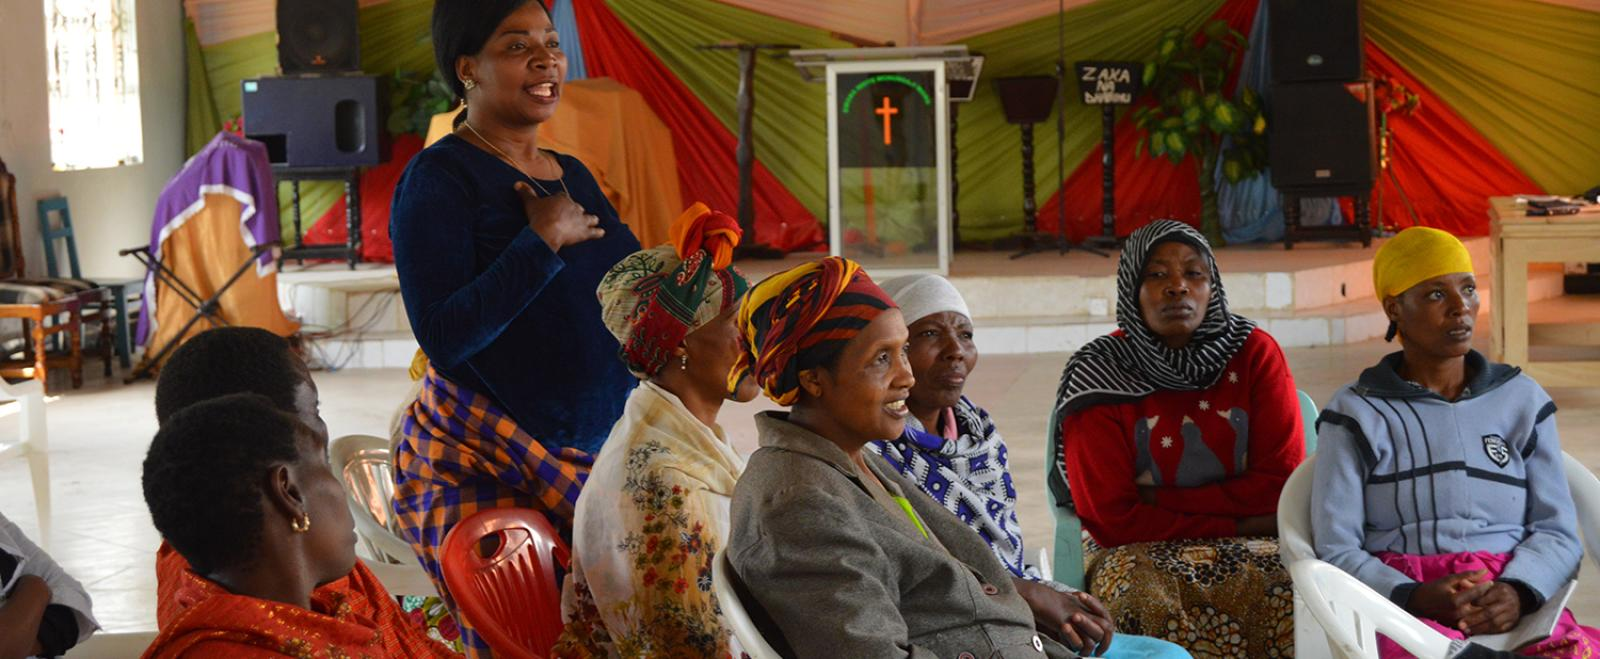 Local women attend a training session hosted by women's empowerment volunteers in Tanzania.